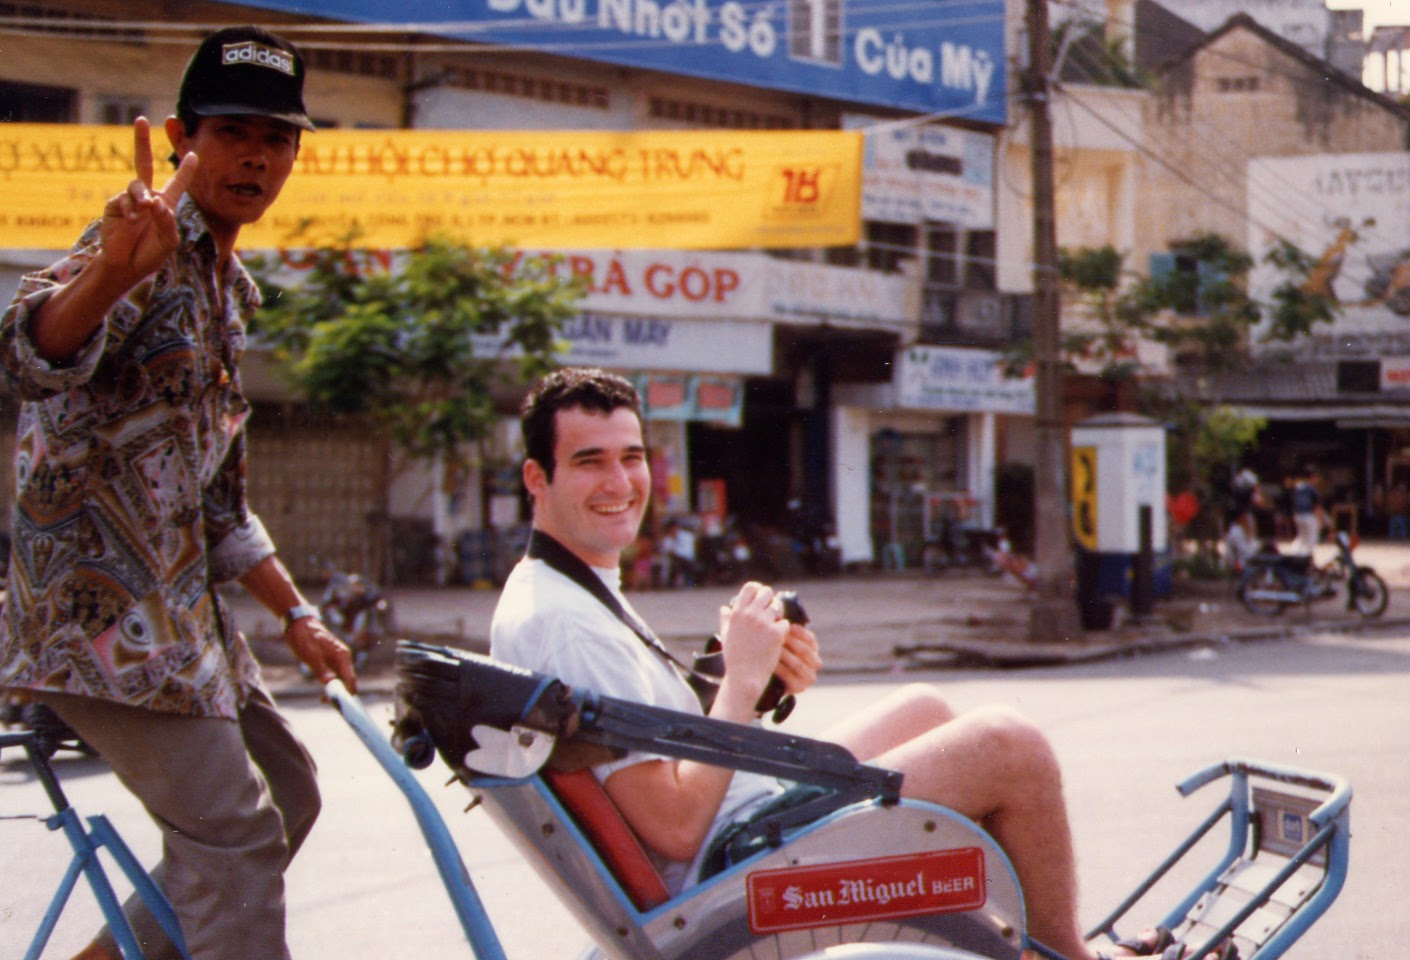 Kyle Nunas poses while sitting on a cycle during his first trip to Vietnam as a tourist in 1997. Photo: Supplied